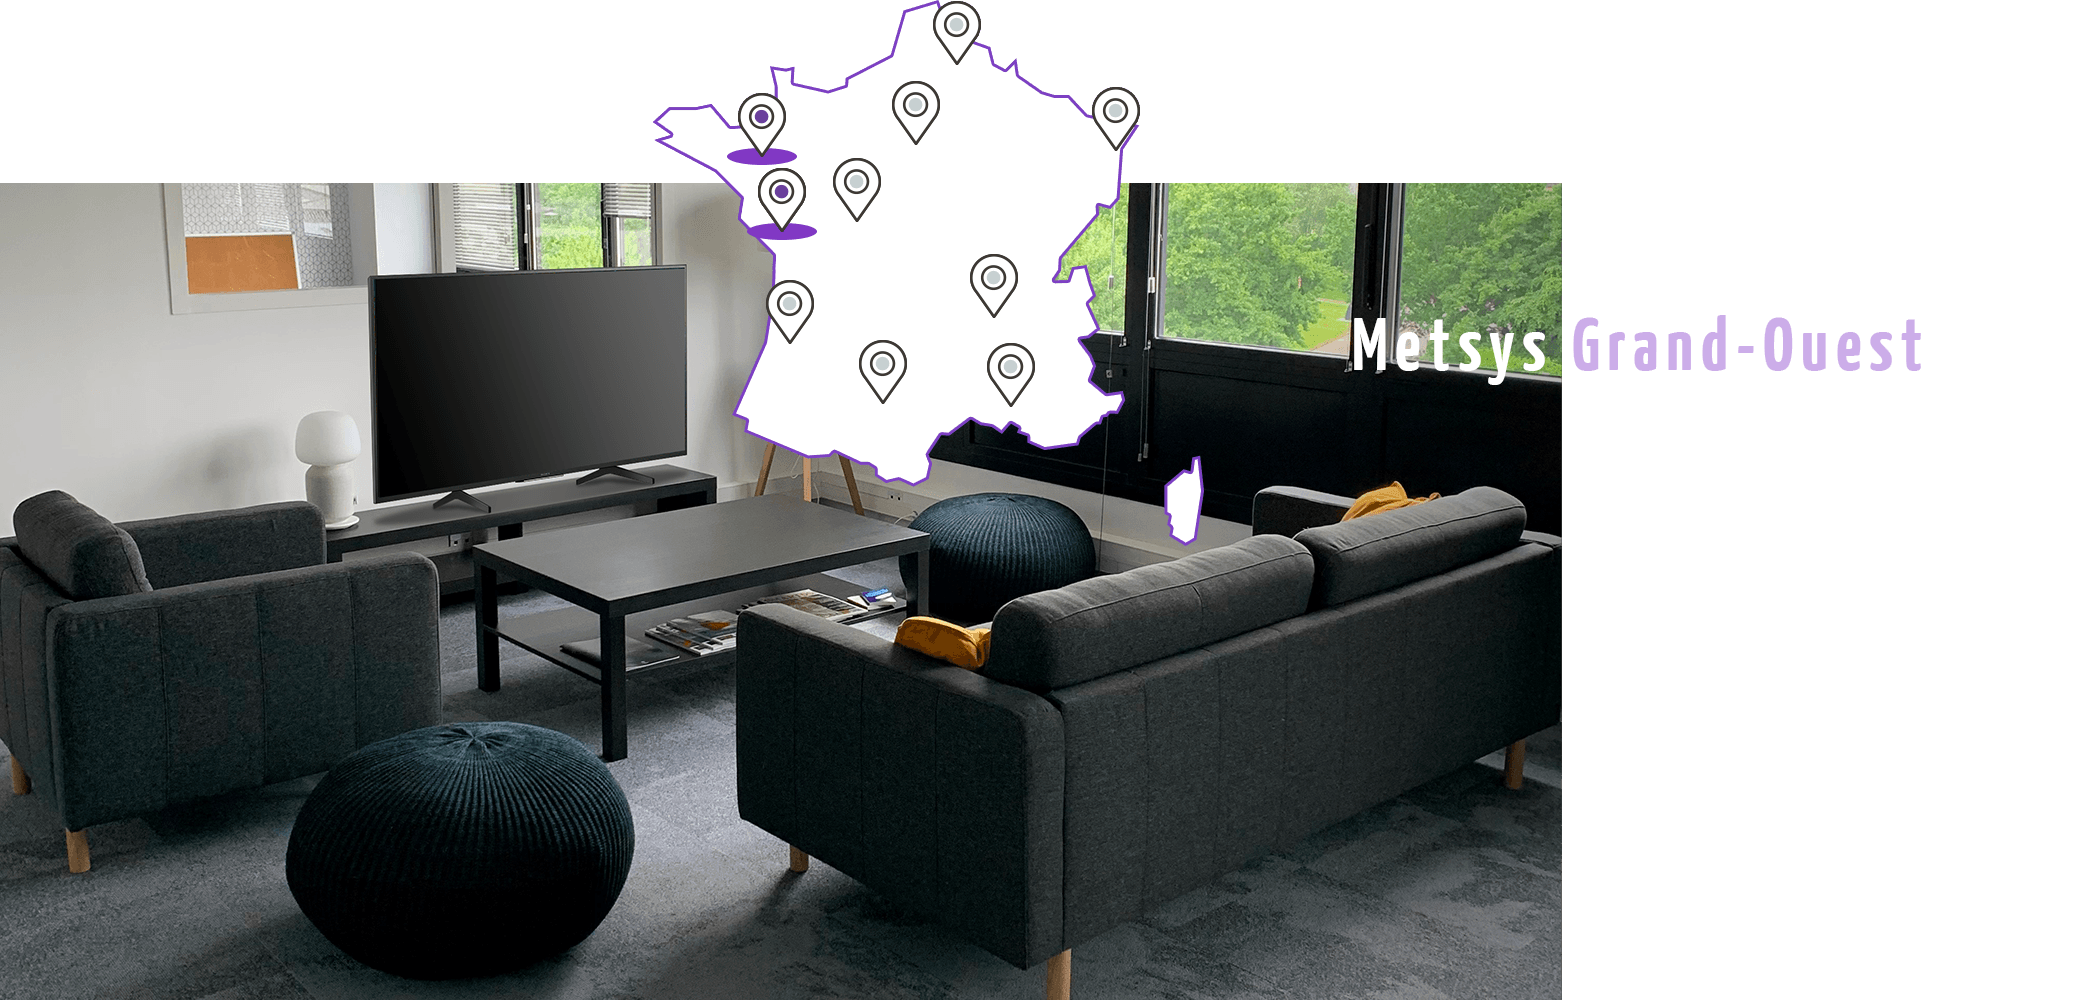 metsys grand-ouest